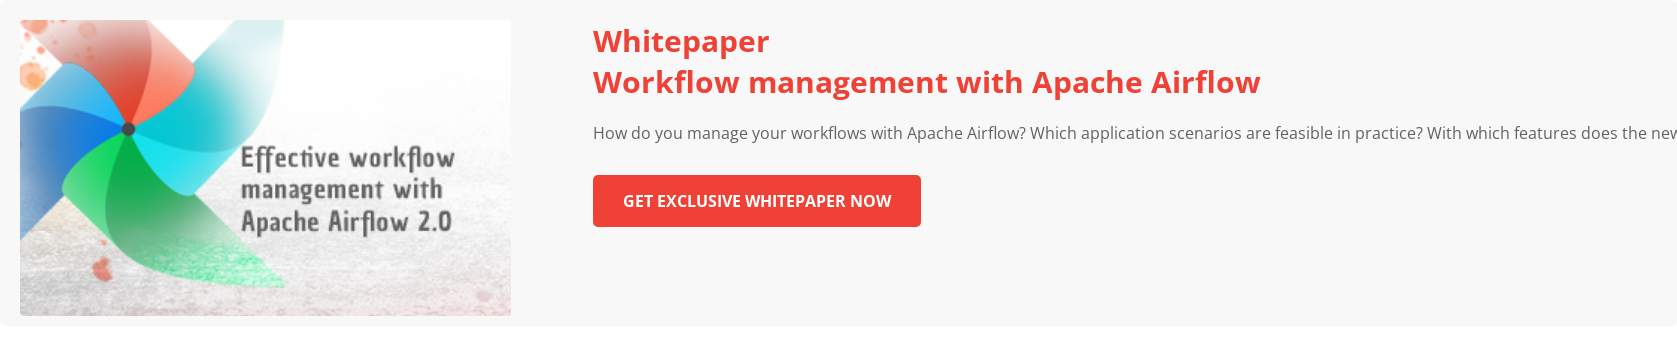 Best-in-class workflow management with Apache Airflow 2.0?  How do you manage  your workflows with Apache Airflow? Which application scenarios are feasible in  practice? With which features does the new major release react to the current  challenges of workflow management?   Download Whitepaper